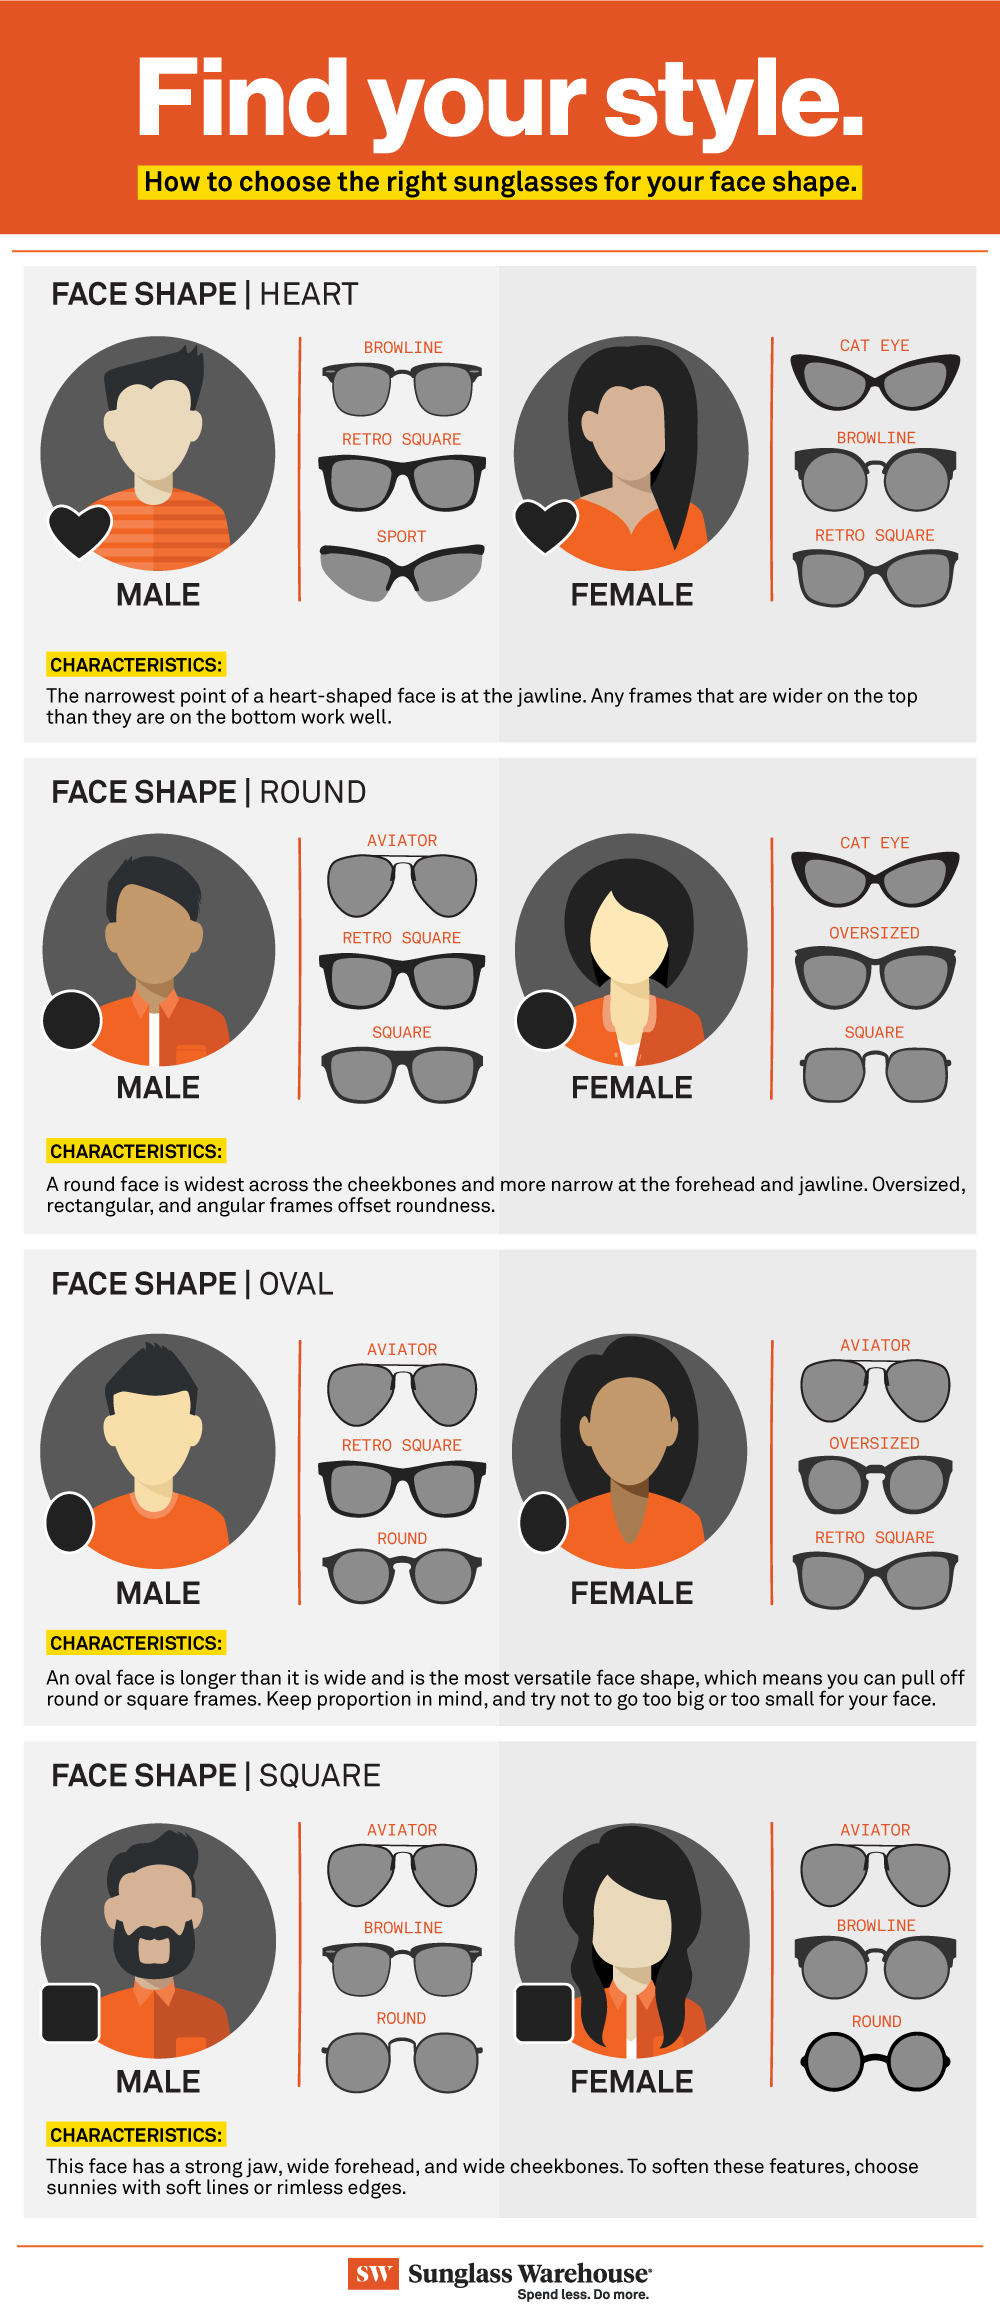 7e922bb75c Now that you know your face shape and the best sunglasses shapes to shop